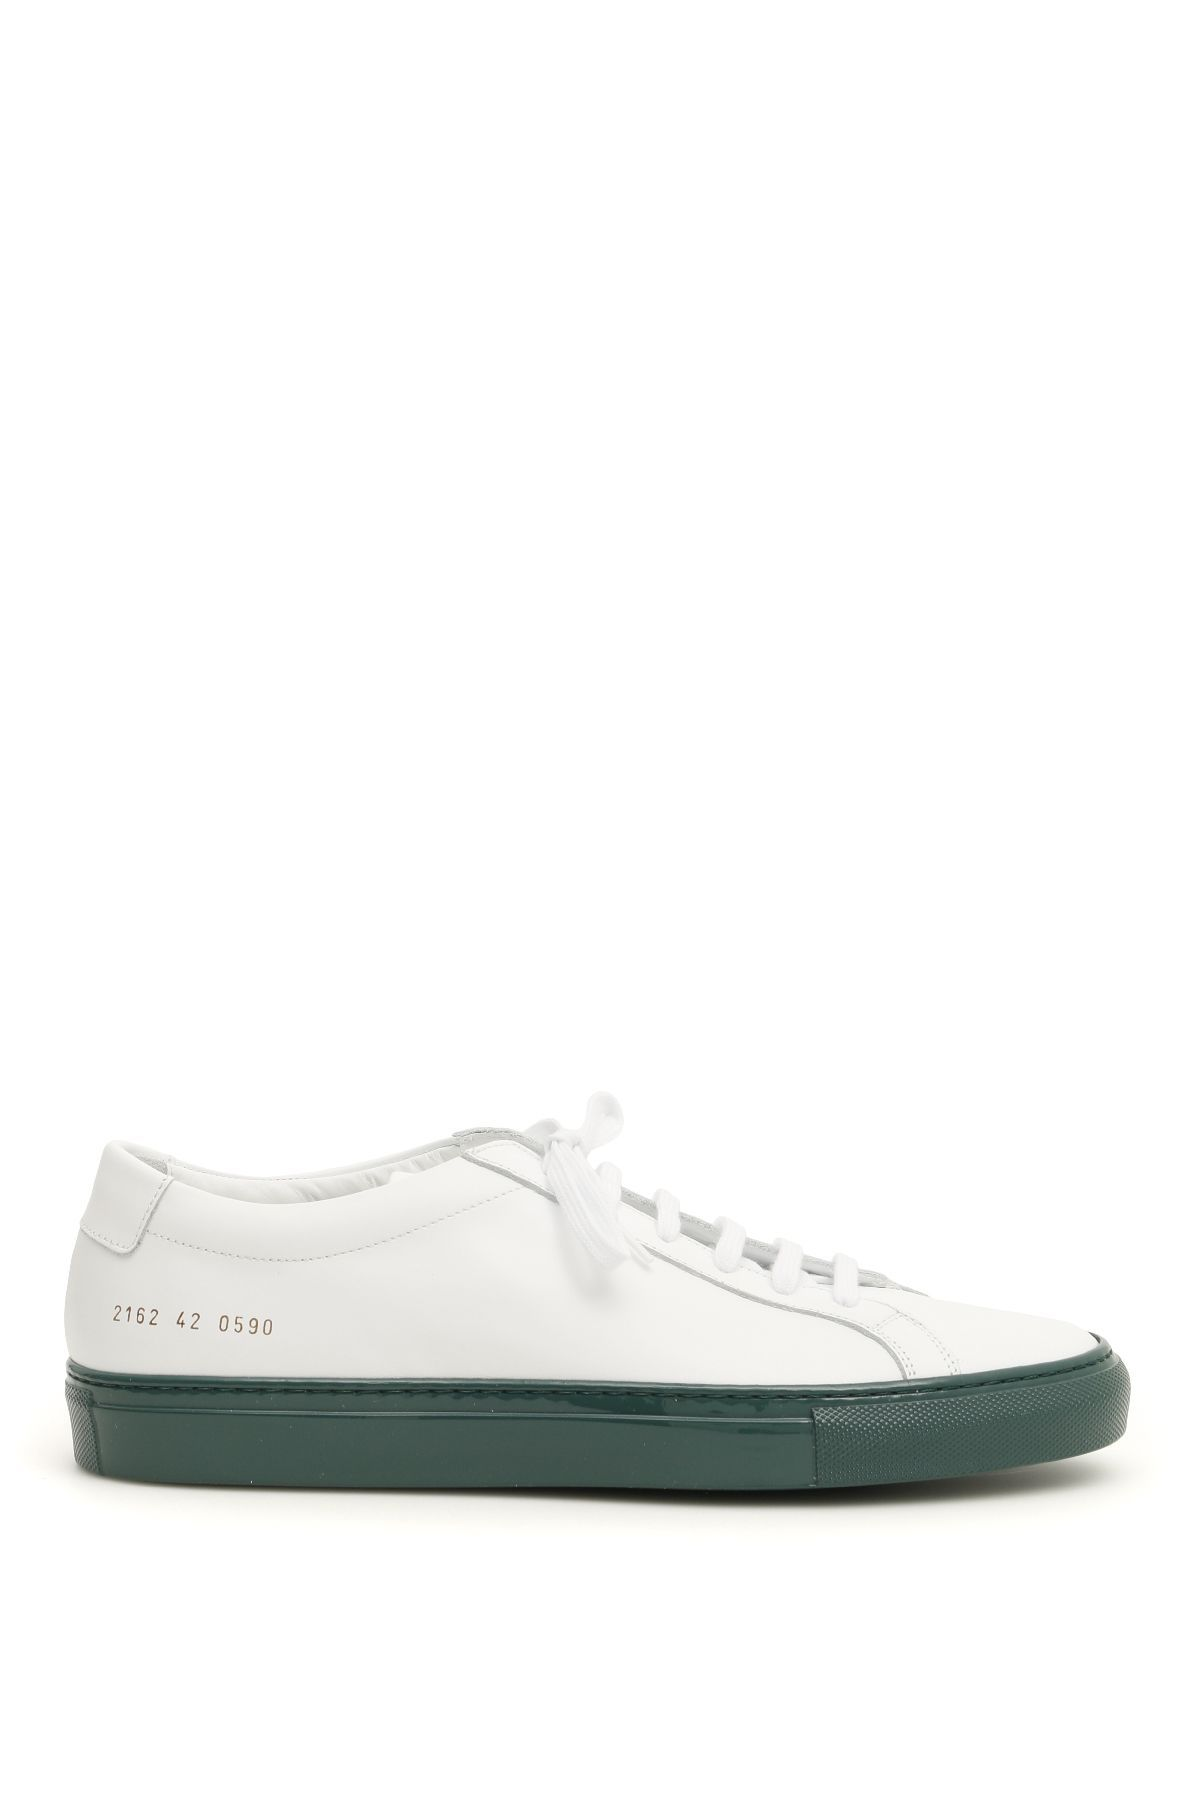 31af8cc9cd03 COMMON PROJECTS ACHILLES SHINY SNEAKERS.  commonprojects  shoes ...